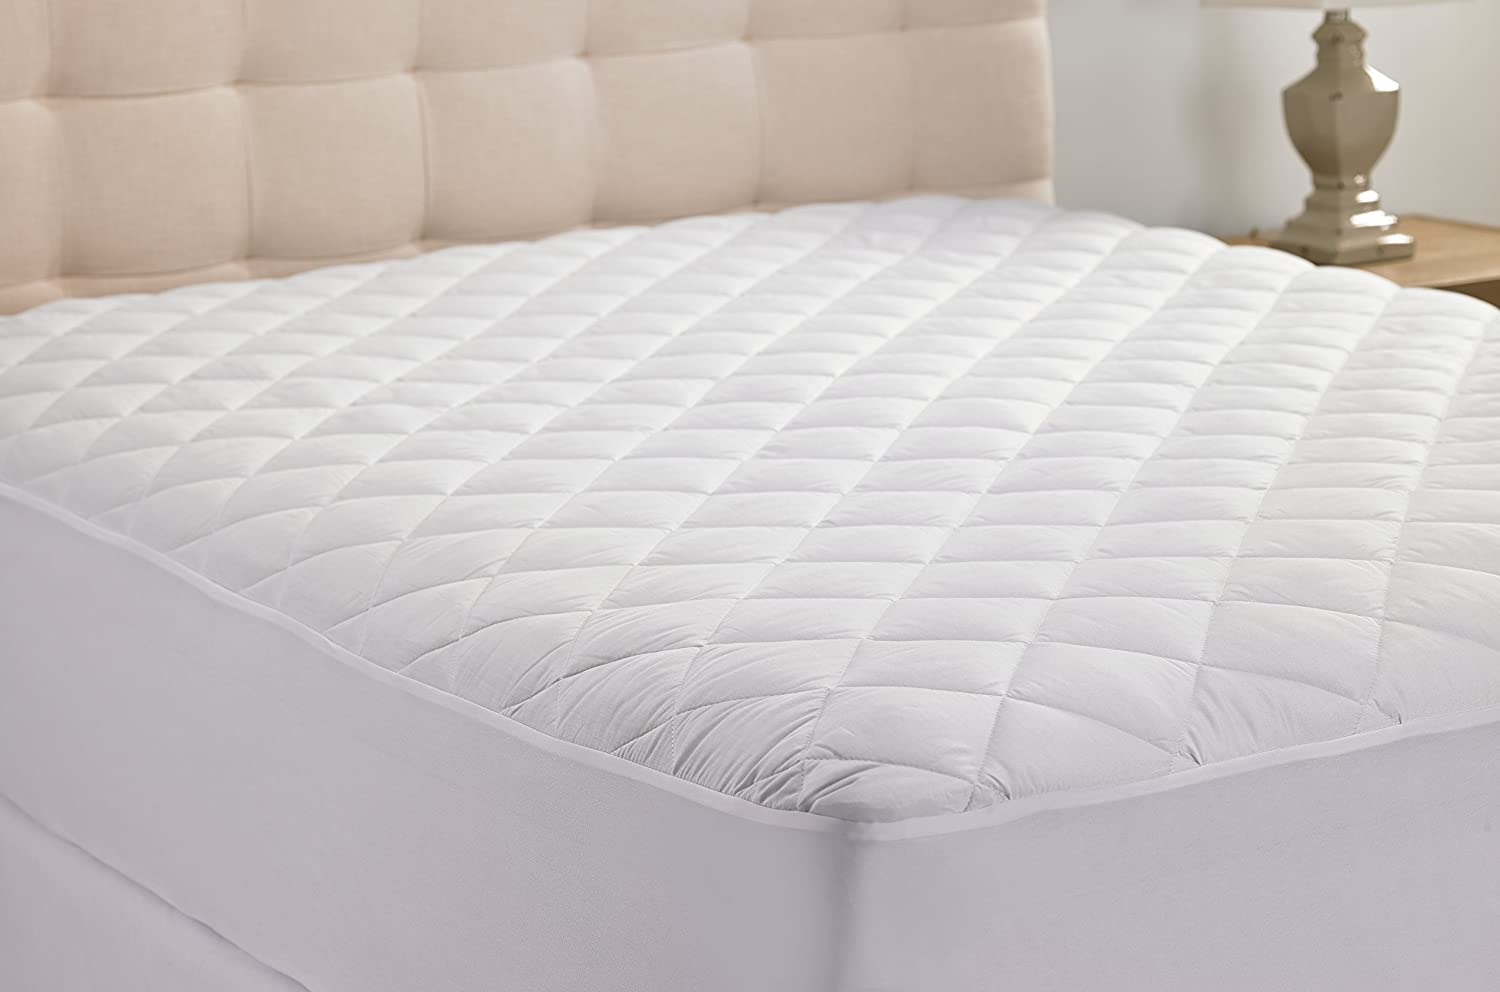 Hypoallergenic Quilted Stretch To Fit Mattress Pad By